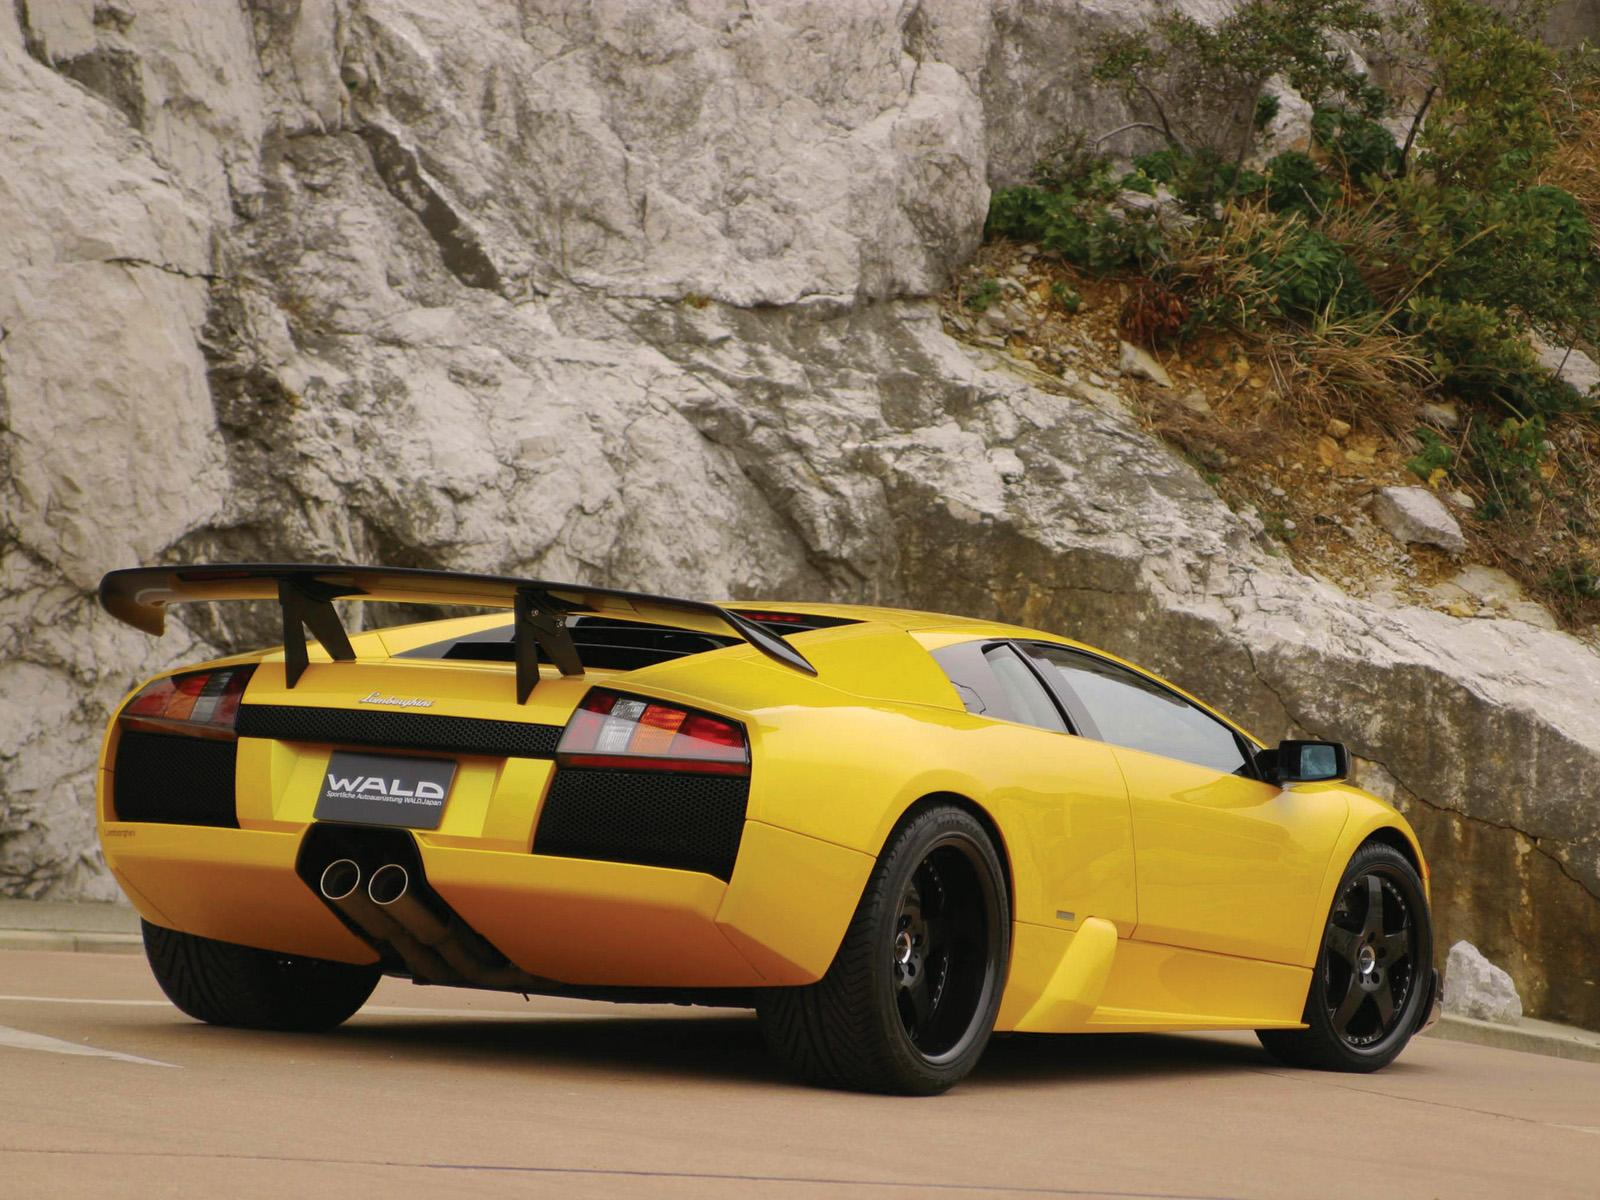 Wald Lamborghini Murcielago S photo 26231